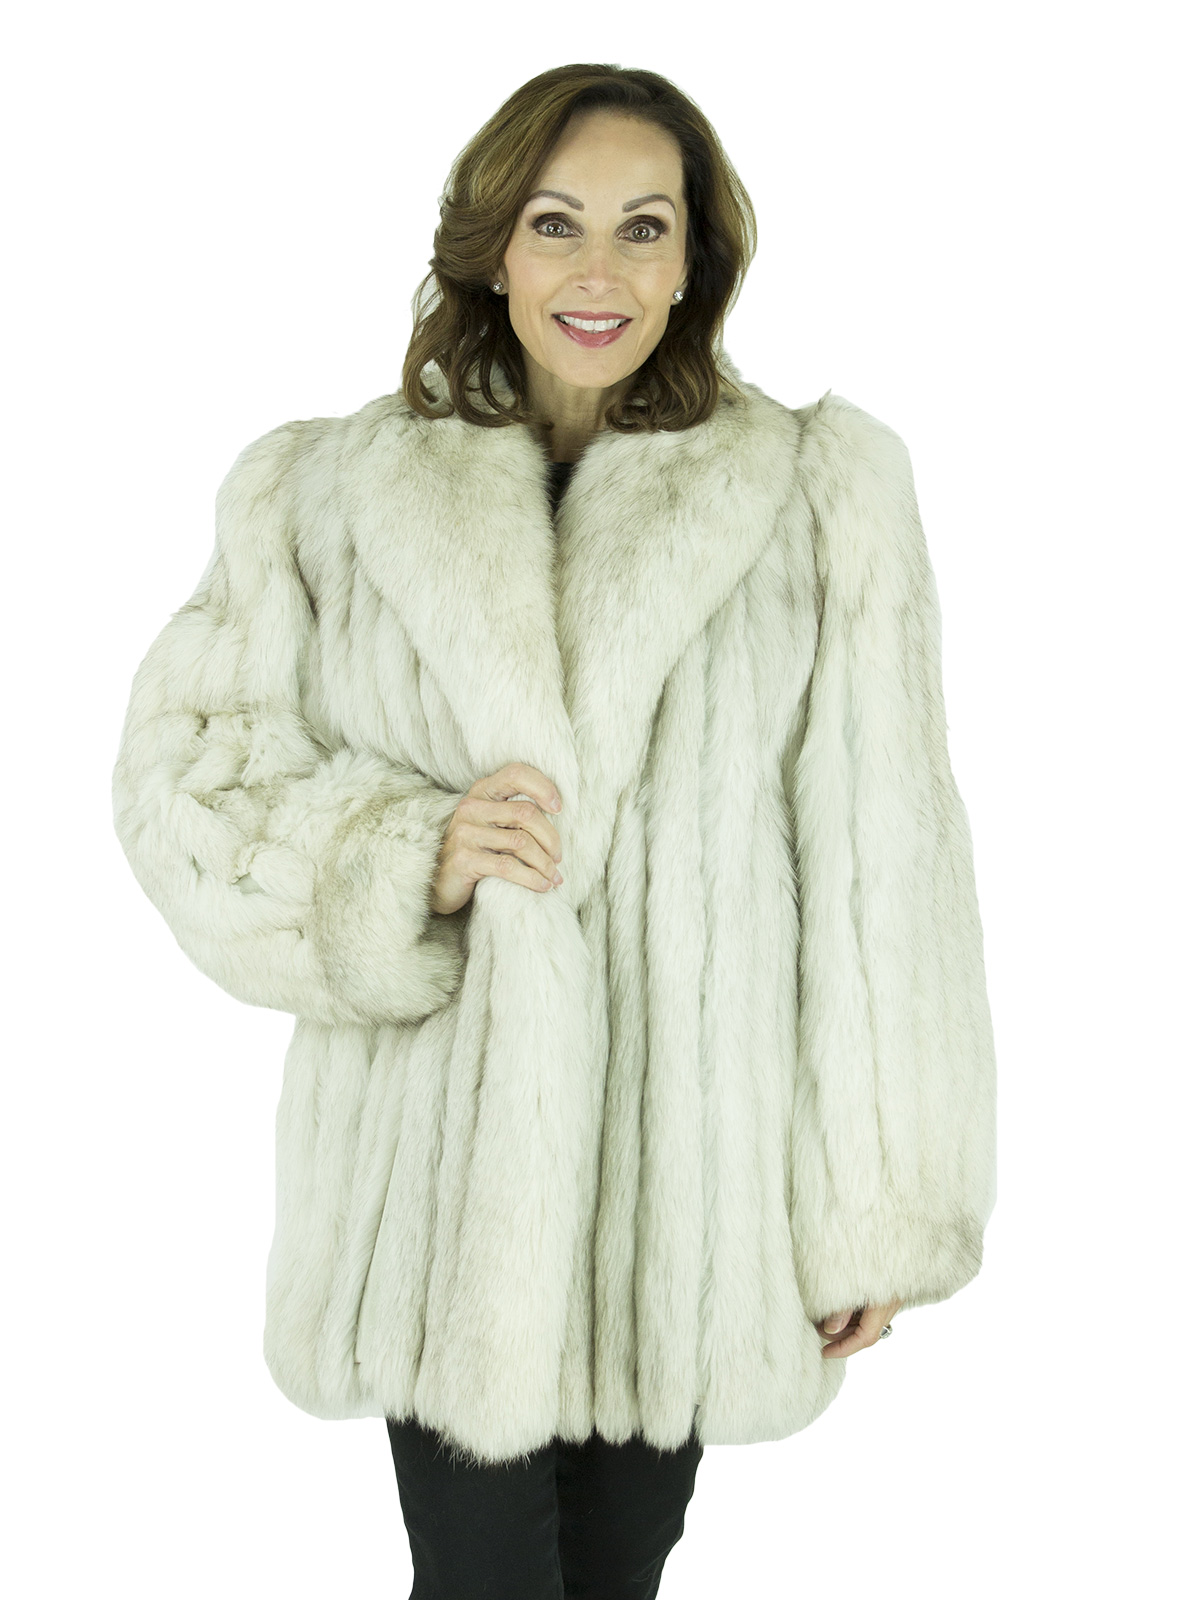 Woman's Cord Cut Blue Fox Fur Jacket